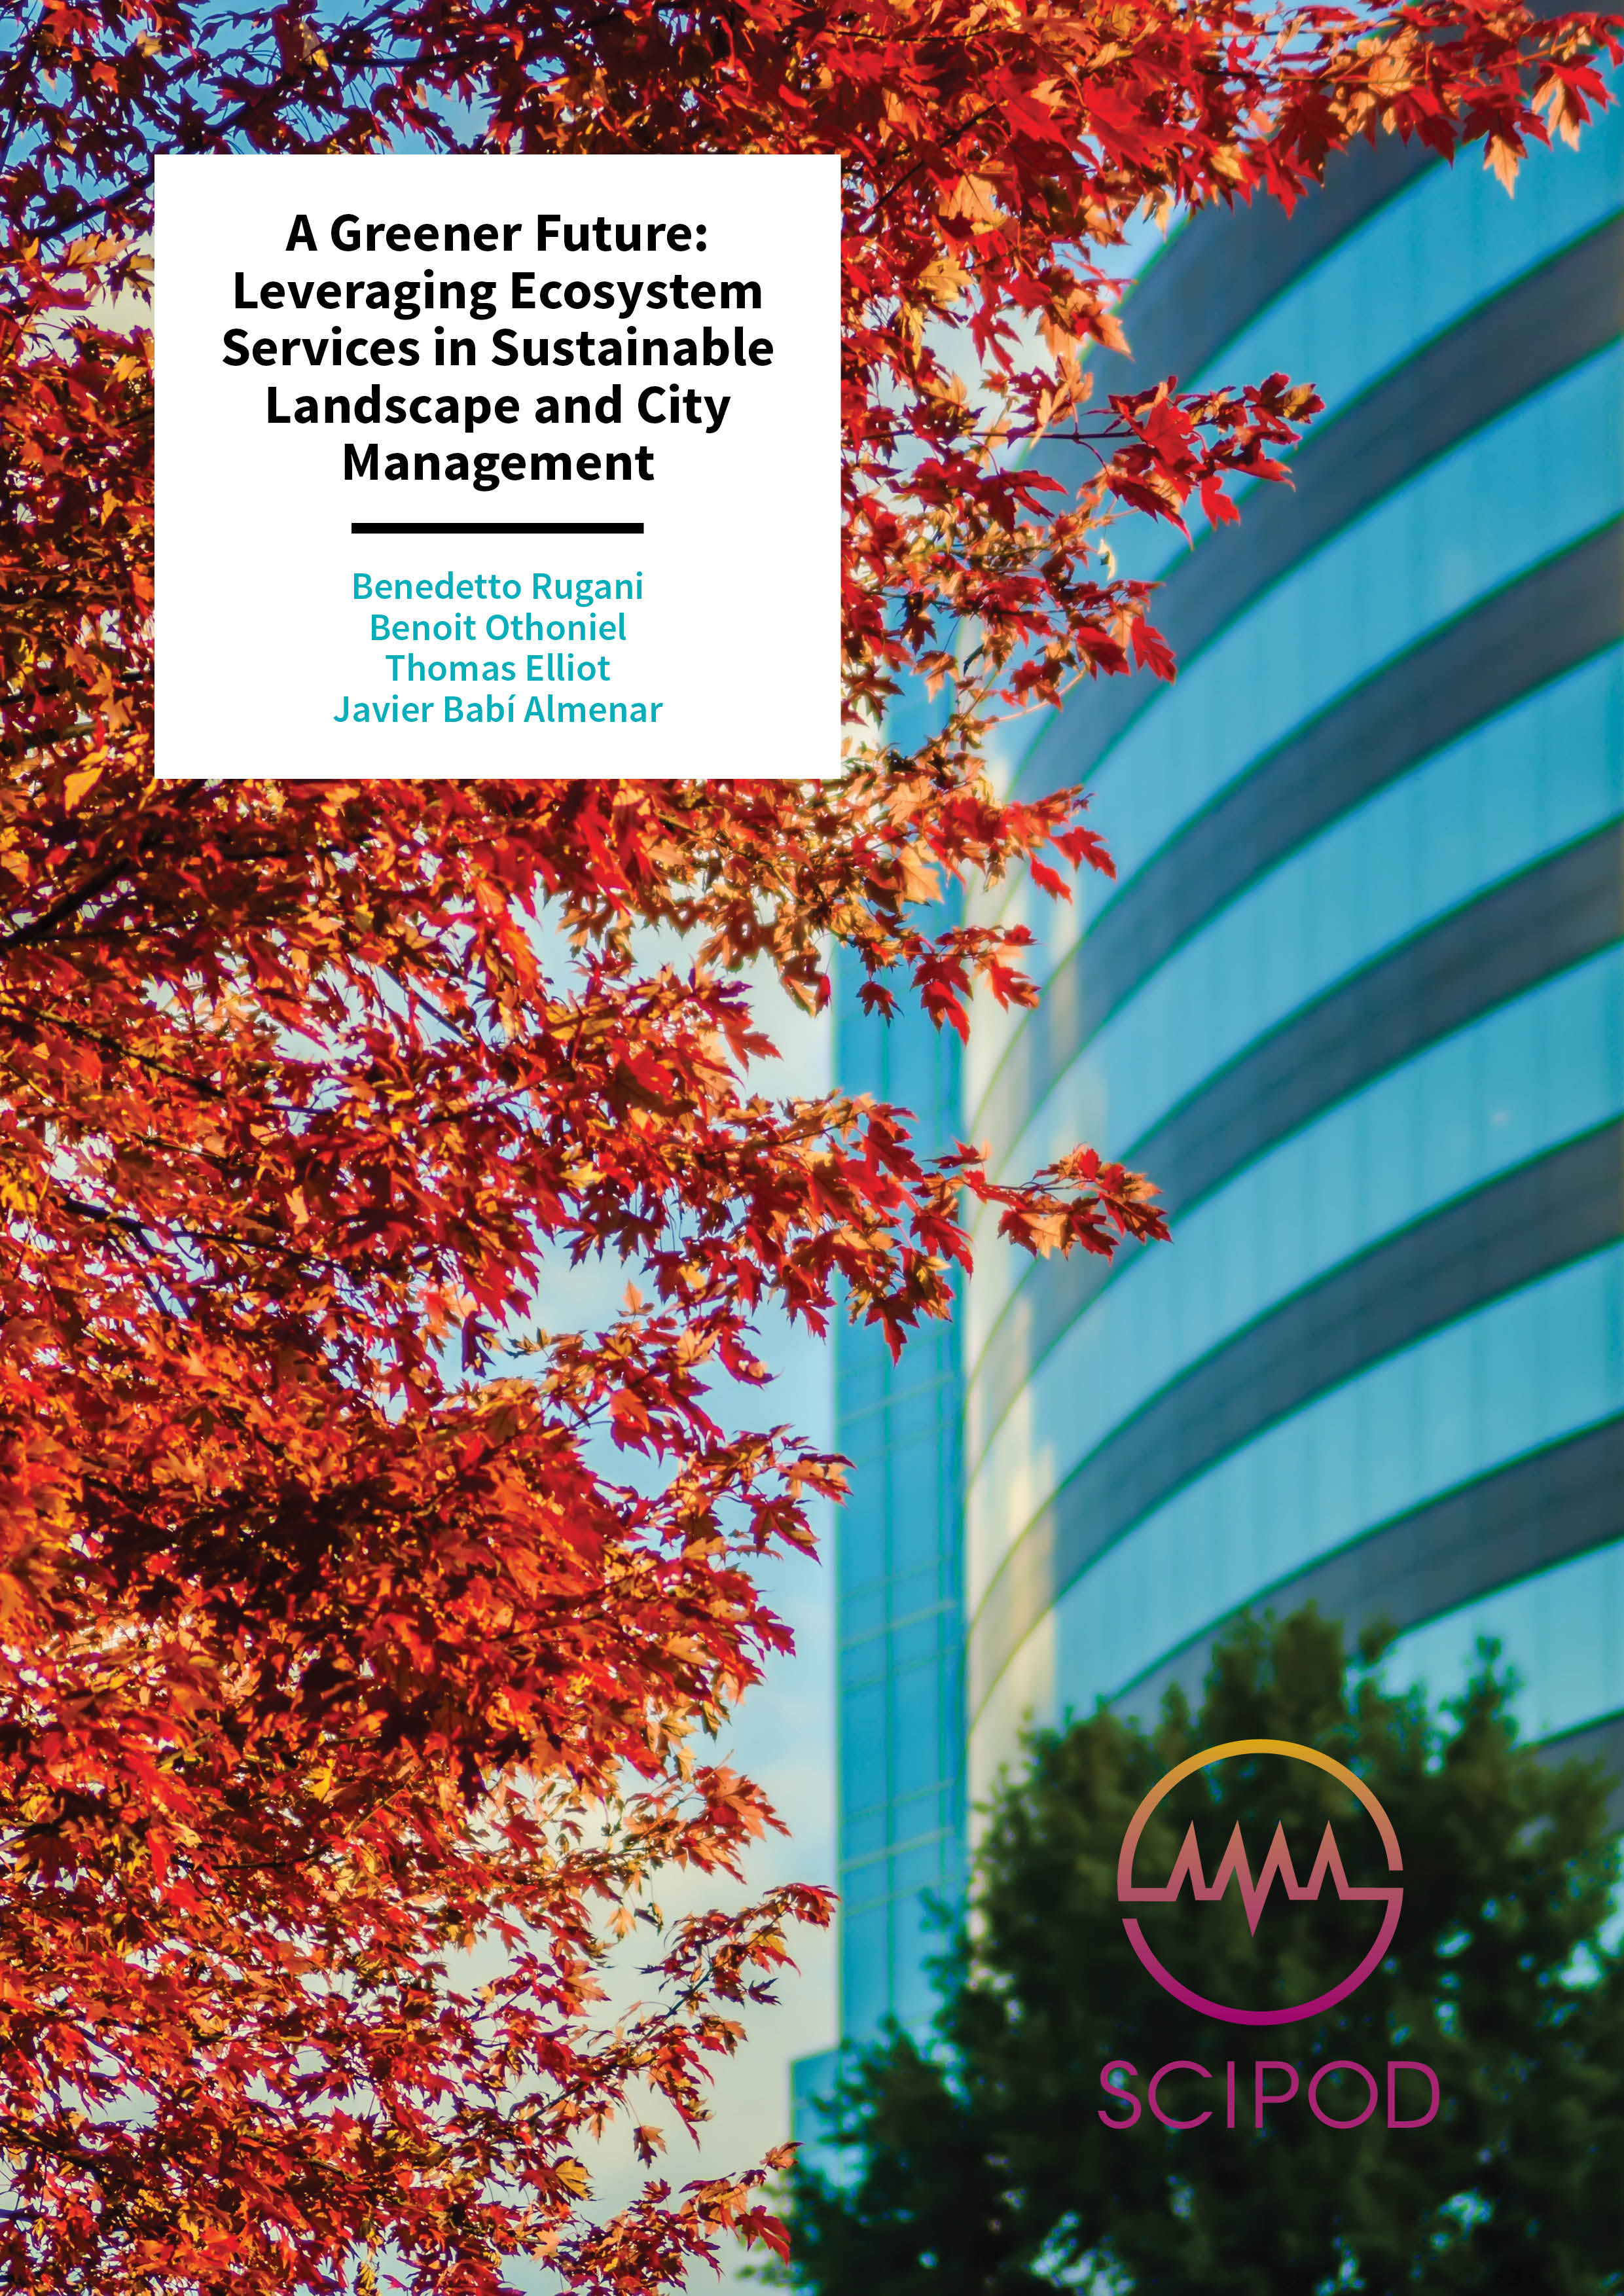 A Greener Future: Leveraging Ecosystem Services in Sustainable Landscape and City Management – Luxembourg Institute of Science and Technology